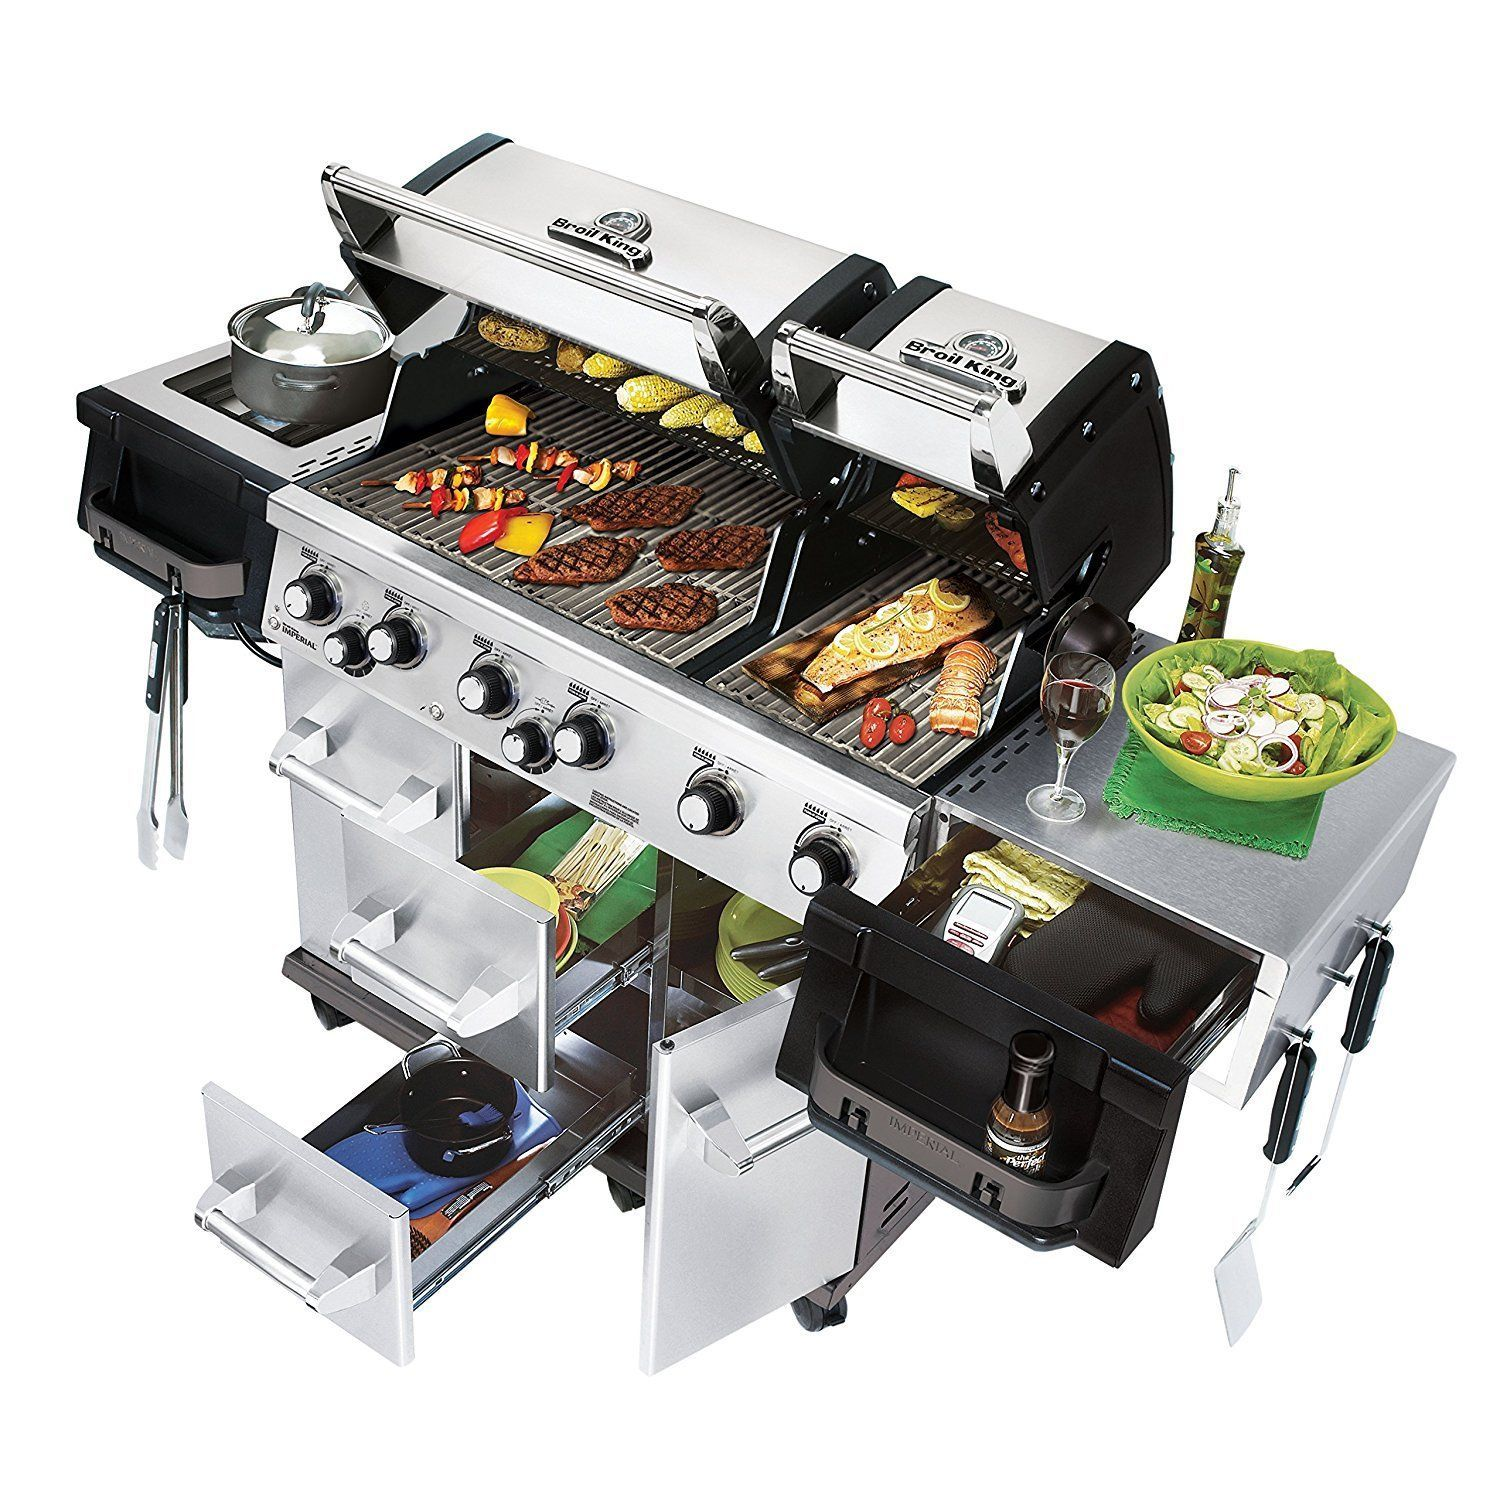 gas grill 6 burner stainless steel outdoor cooking barbecue patio